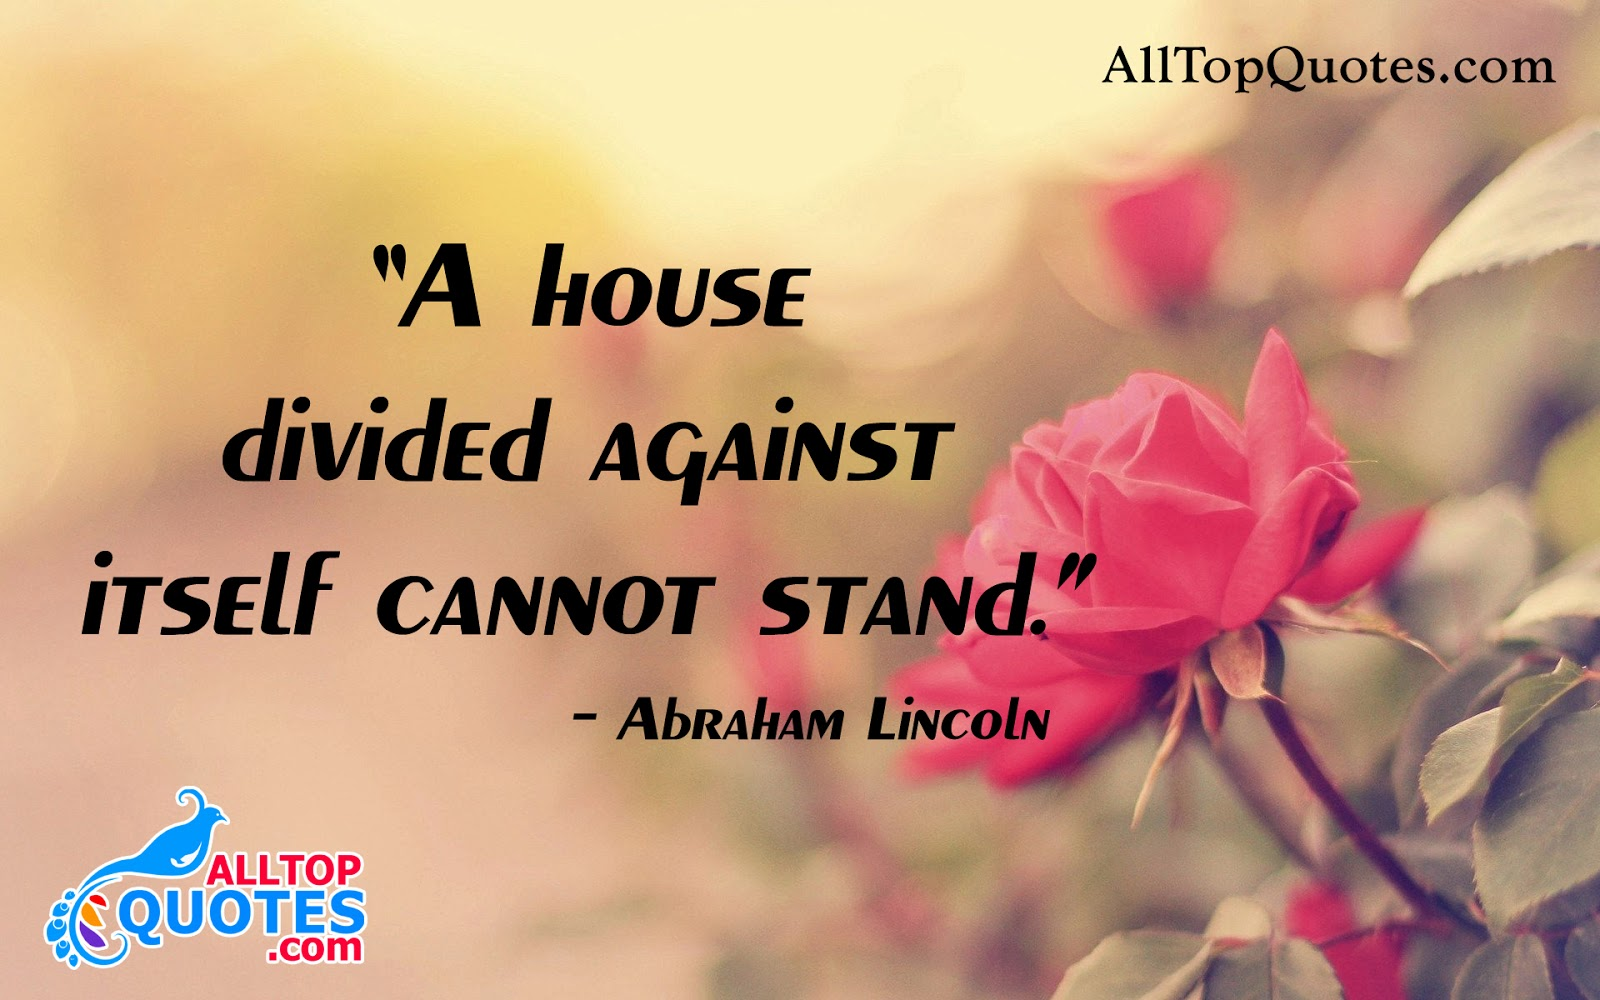 Abraham Lincoln Quotes On Life Abraham Lincon's Wisdom Quotations In English  All Top Quotes